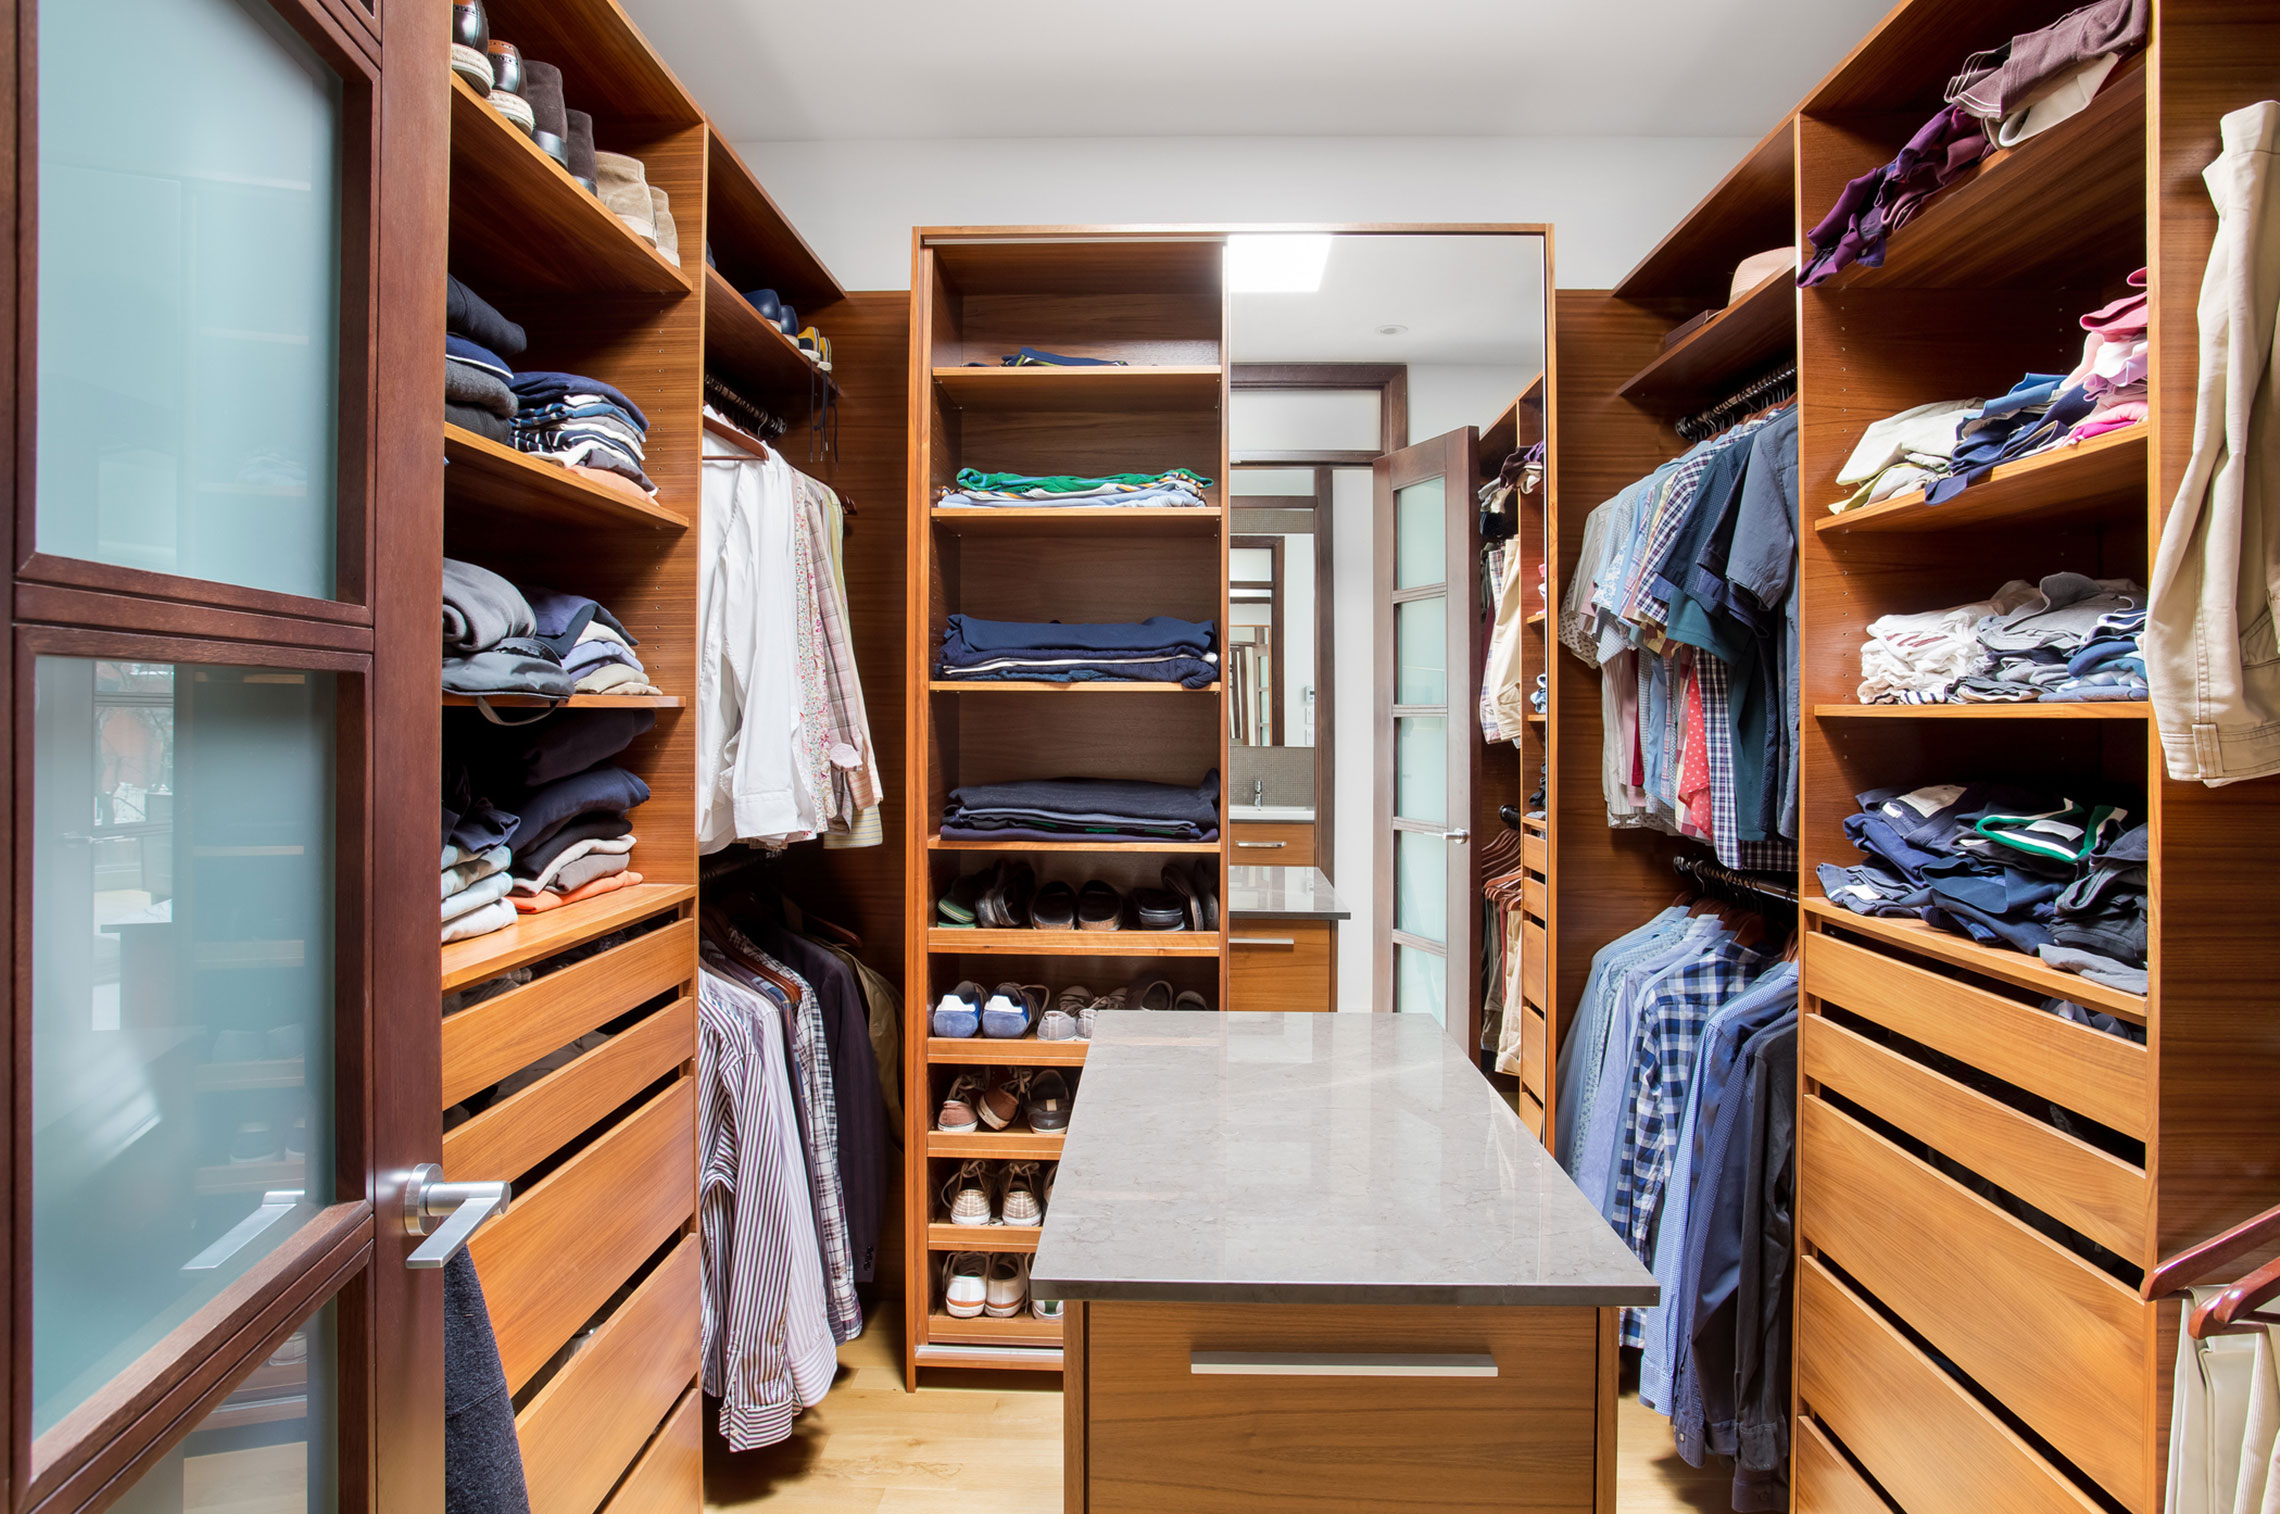 Closet Wars – How to Share Your Space Harmoniously